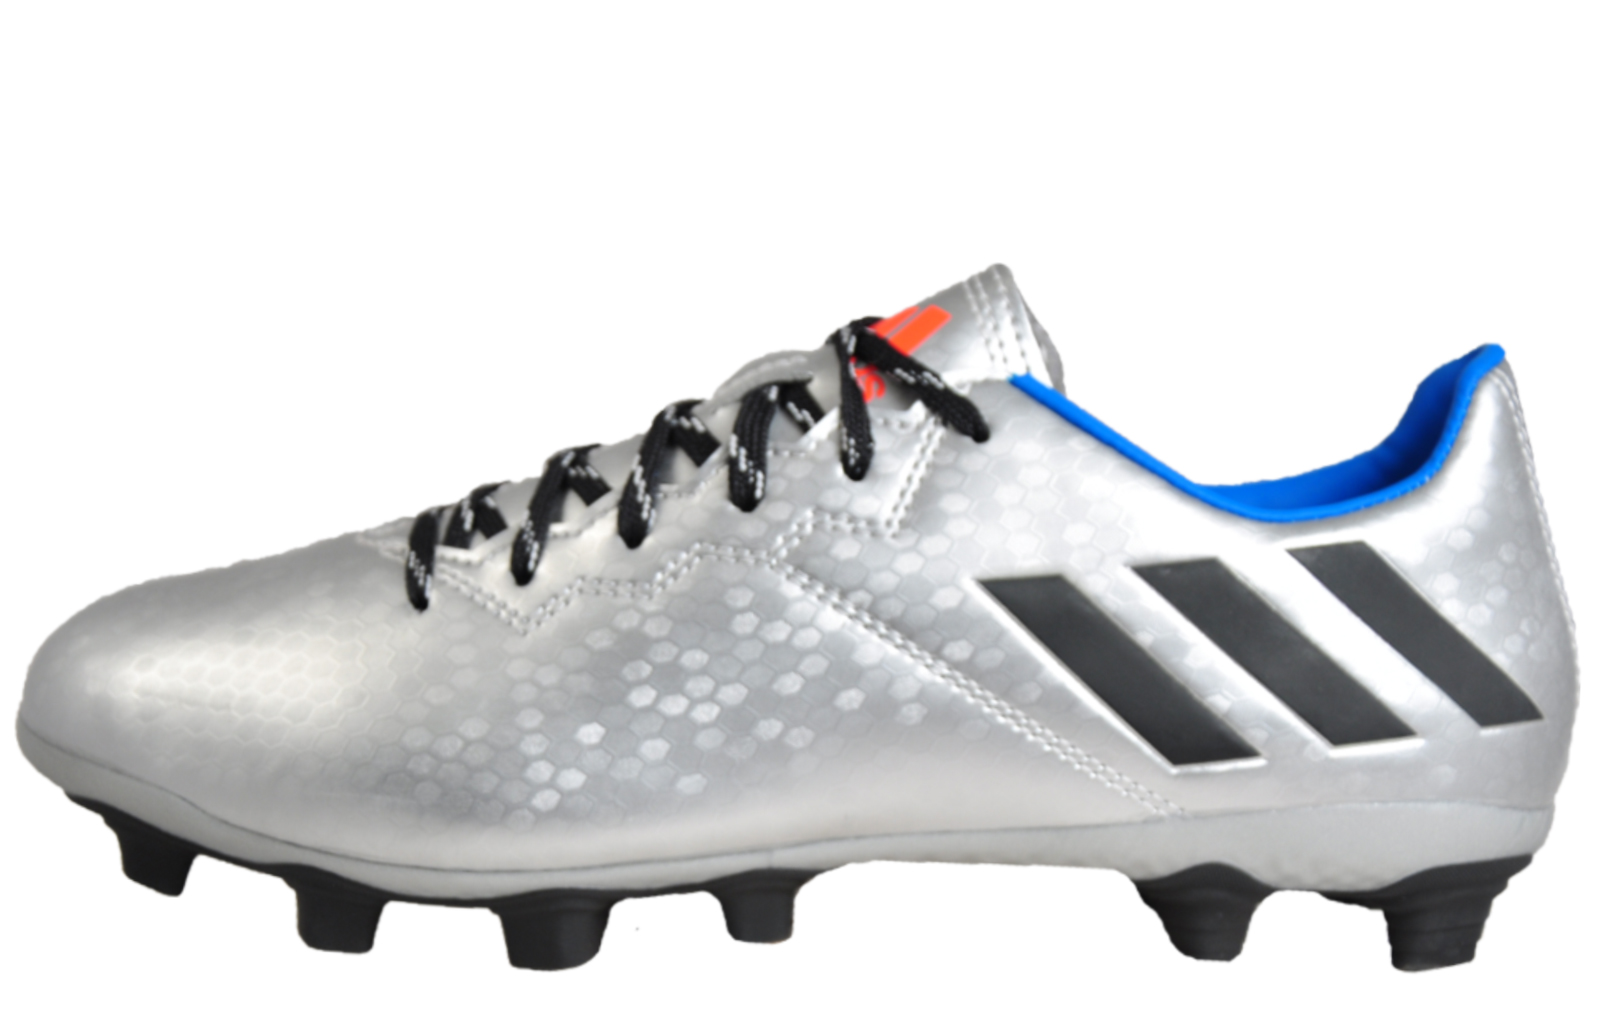 ad37ac9da428 Cheap Football Boots | Men's Football Boots Sale | Express Trainers